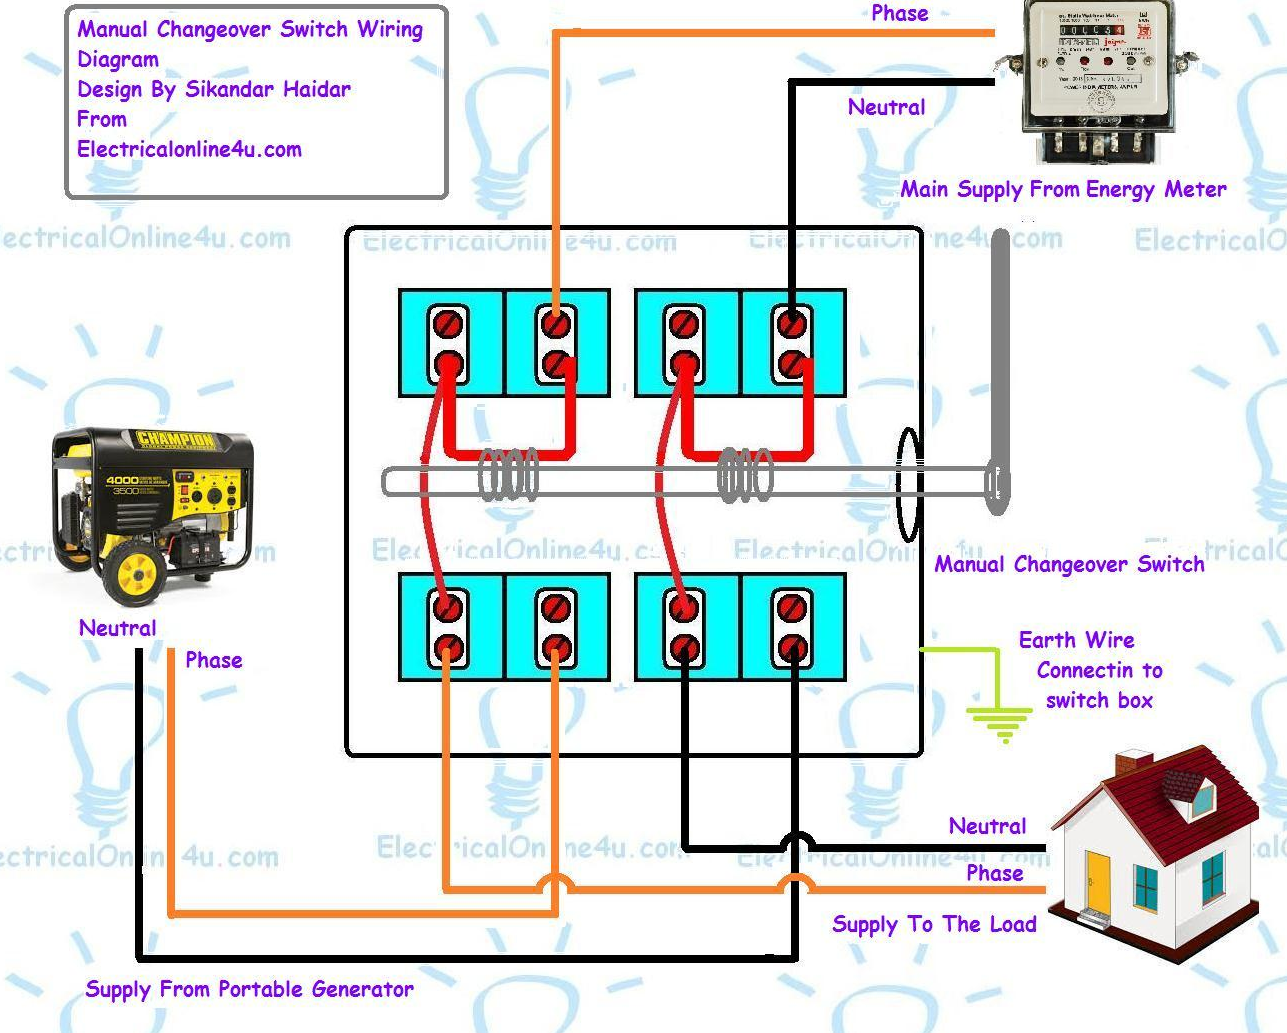 manual%2Bchangeover%2Bswitch%2Bwiring%2Bdiagram single phase motor wiring with contactor diagram electrical electrical contactor wiring diagram at pacquiaovsvargaslive.co